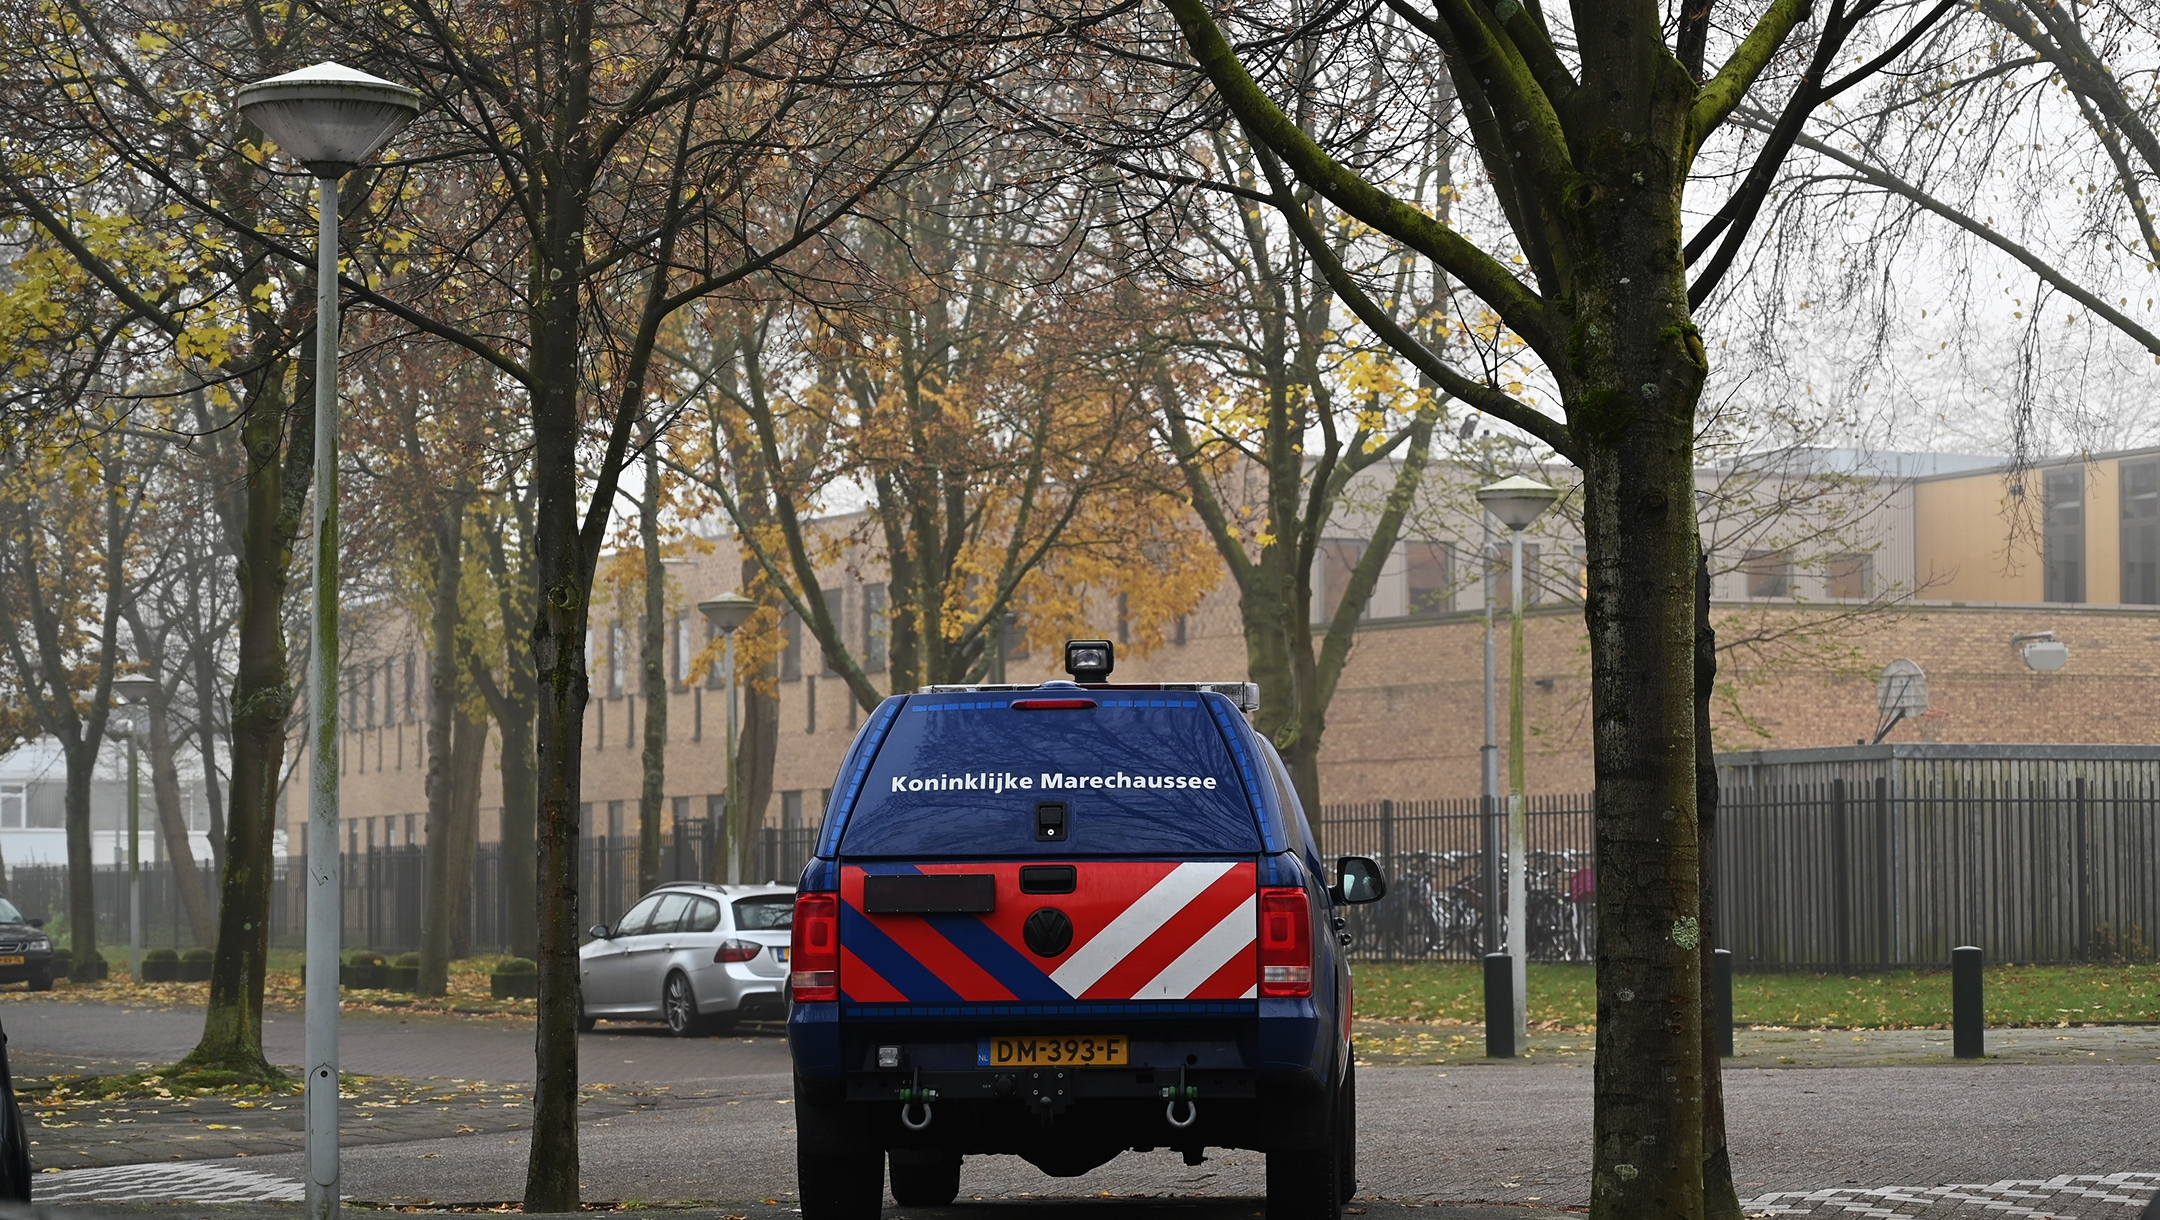 Jewish schools have reopened in the Netherlands, but some worry that their security is compromised